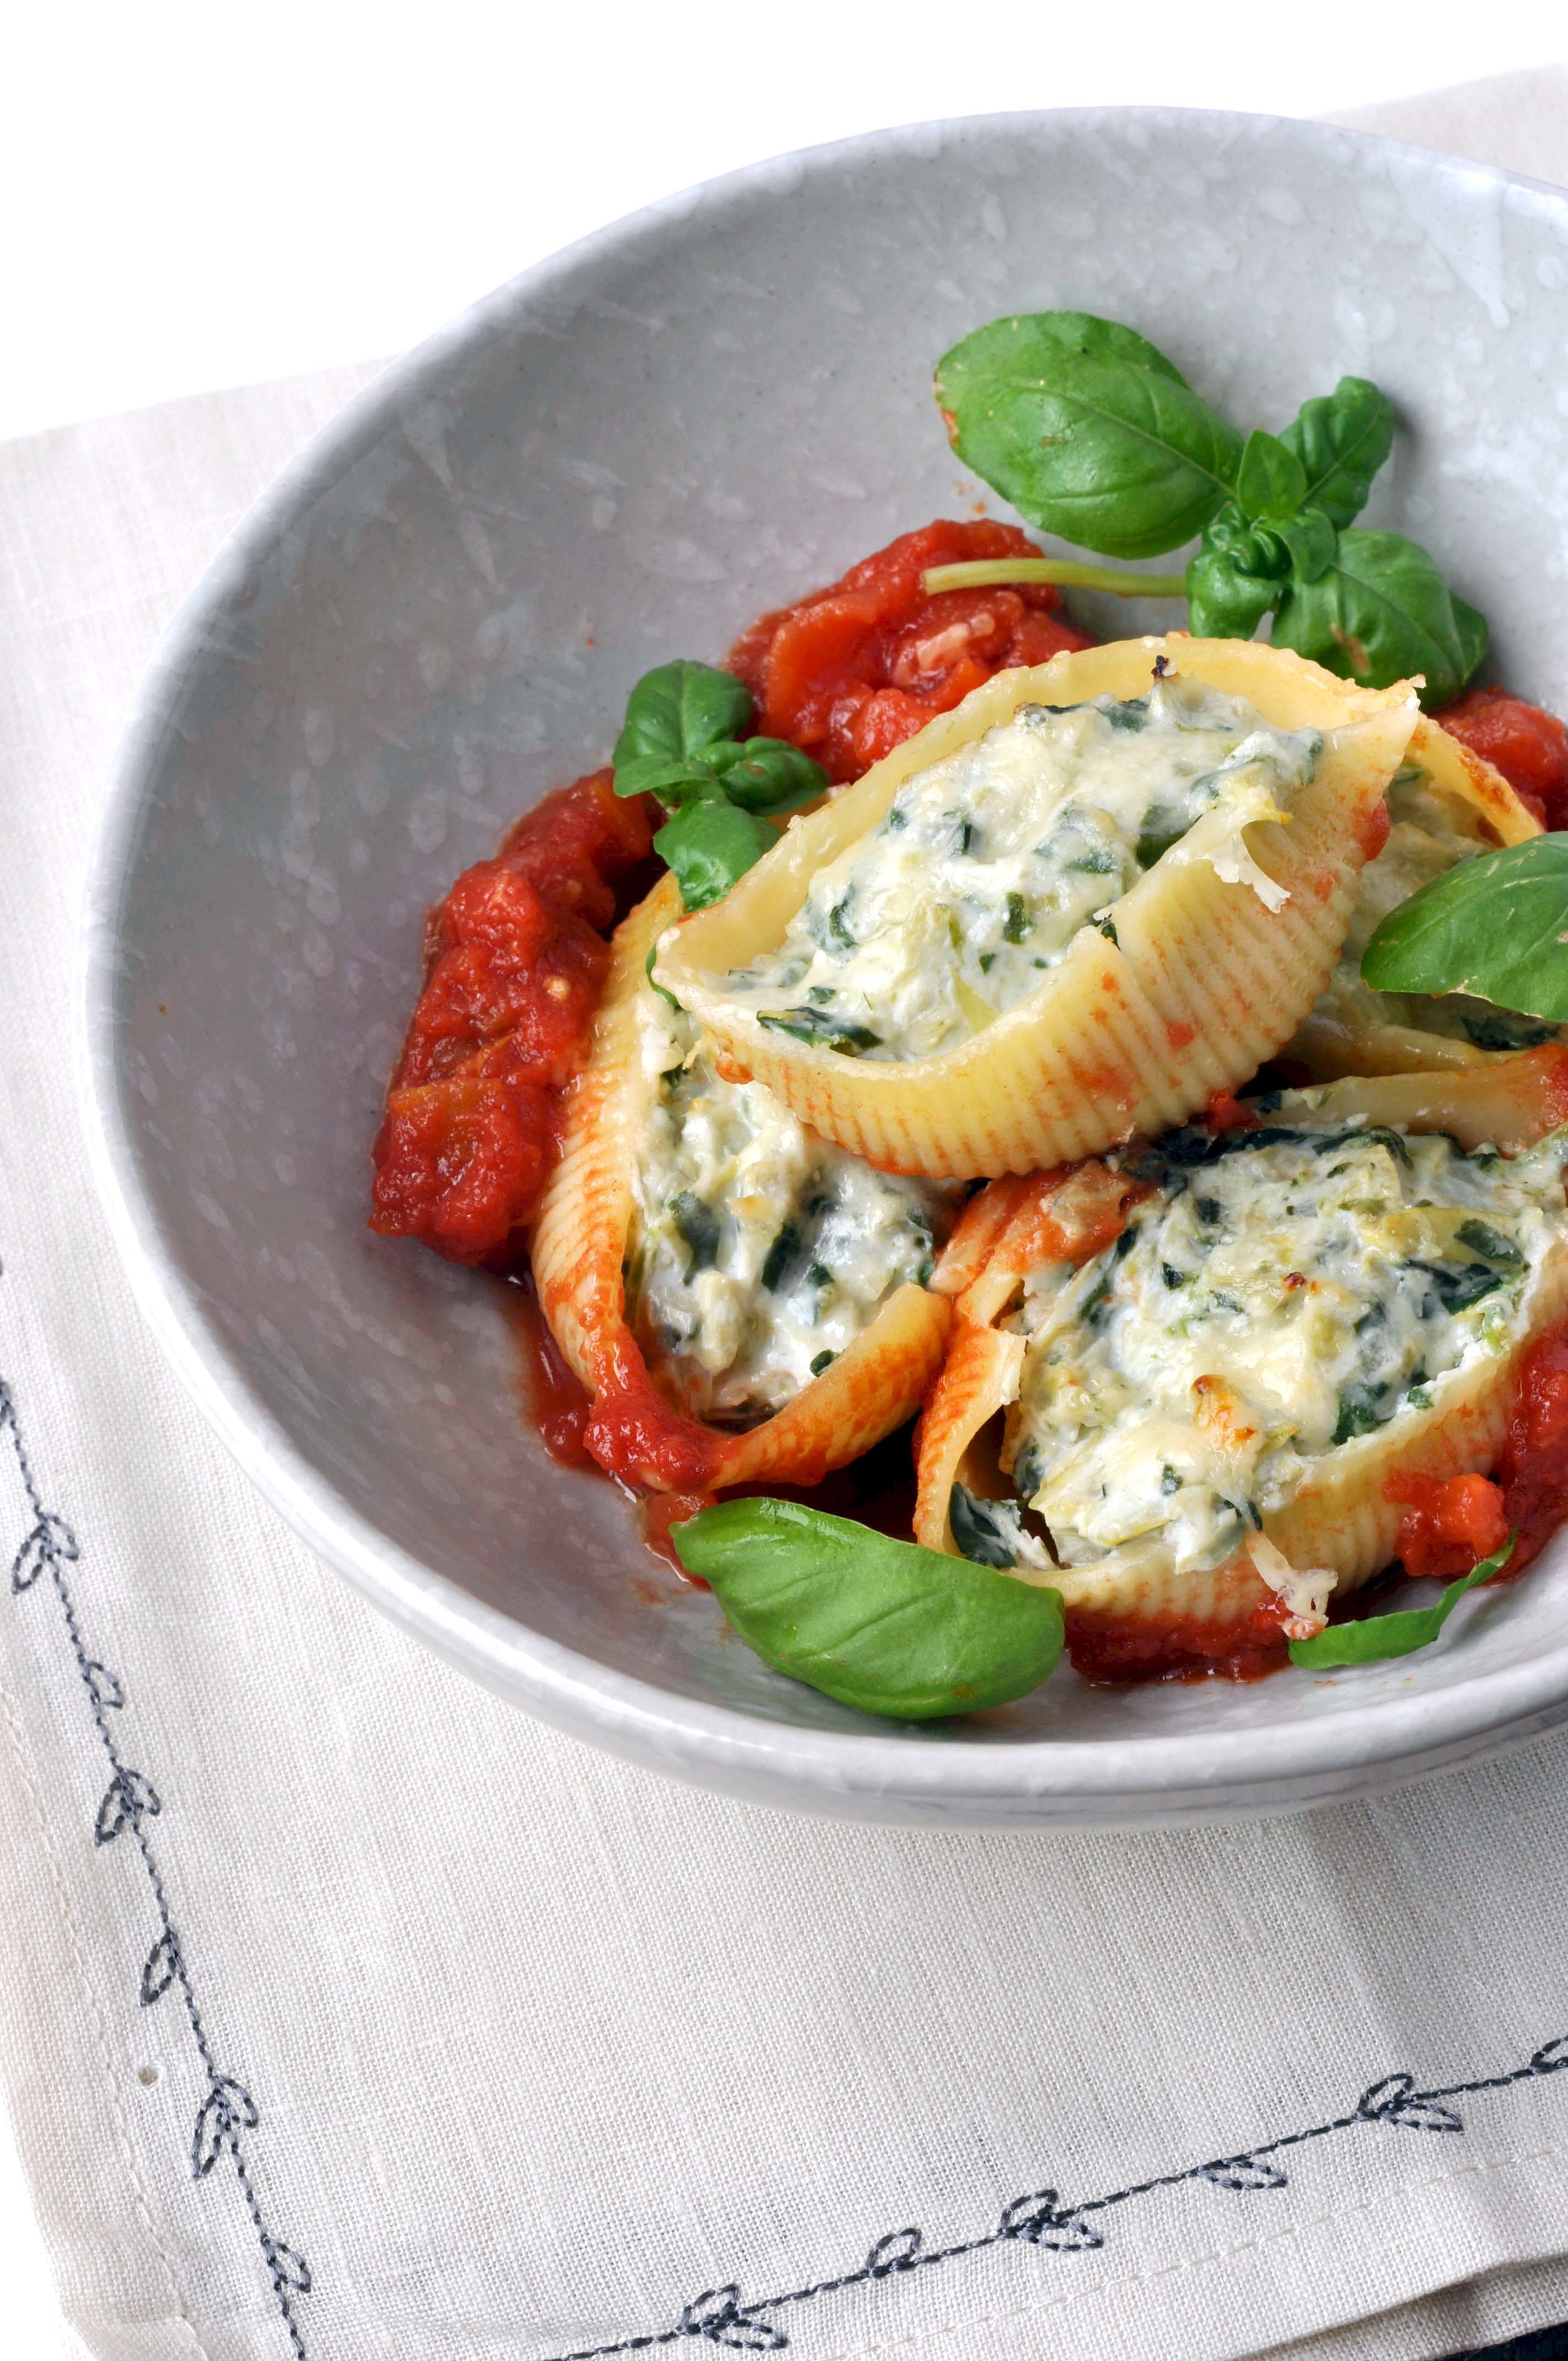 Spinach Artichoke Stuffed Pasta Shells from This Healthy Table - I did not invent the spinach artichoke combo, but that should not dissuade you from making this delicious recipe.